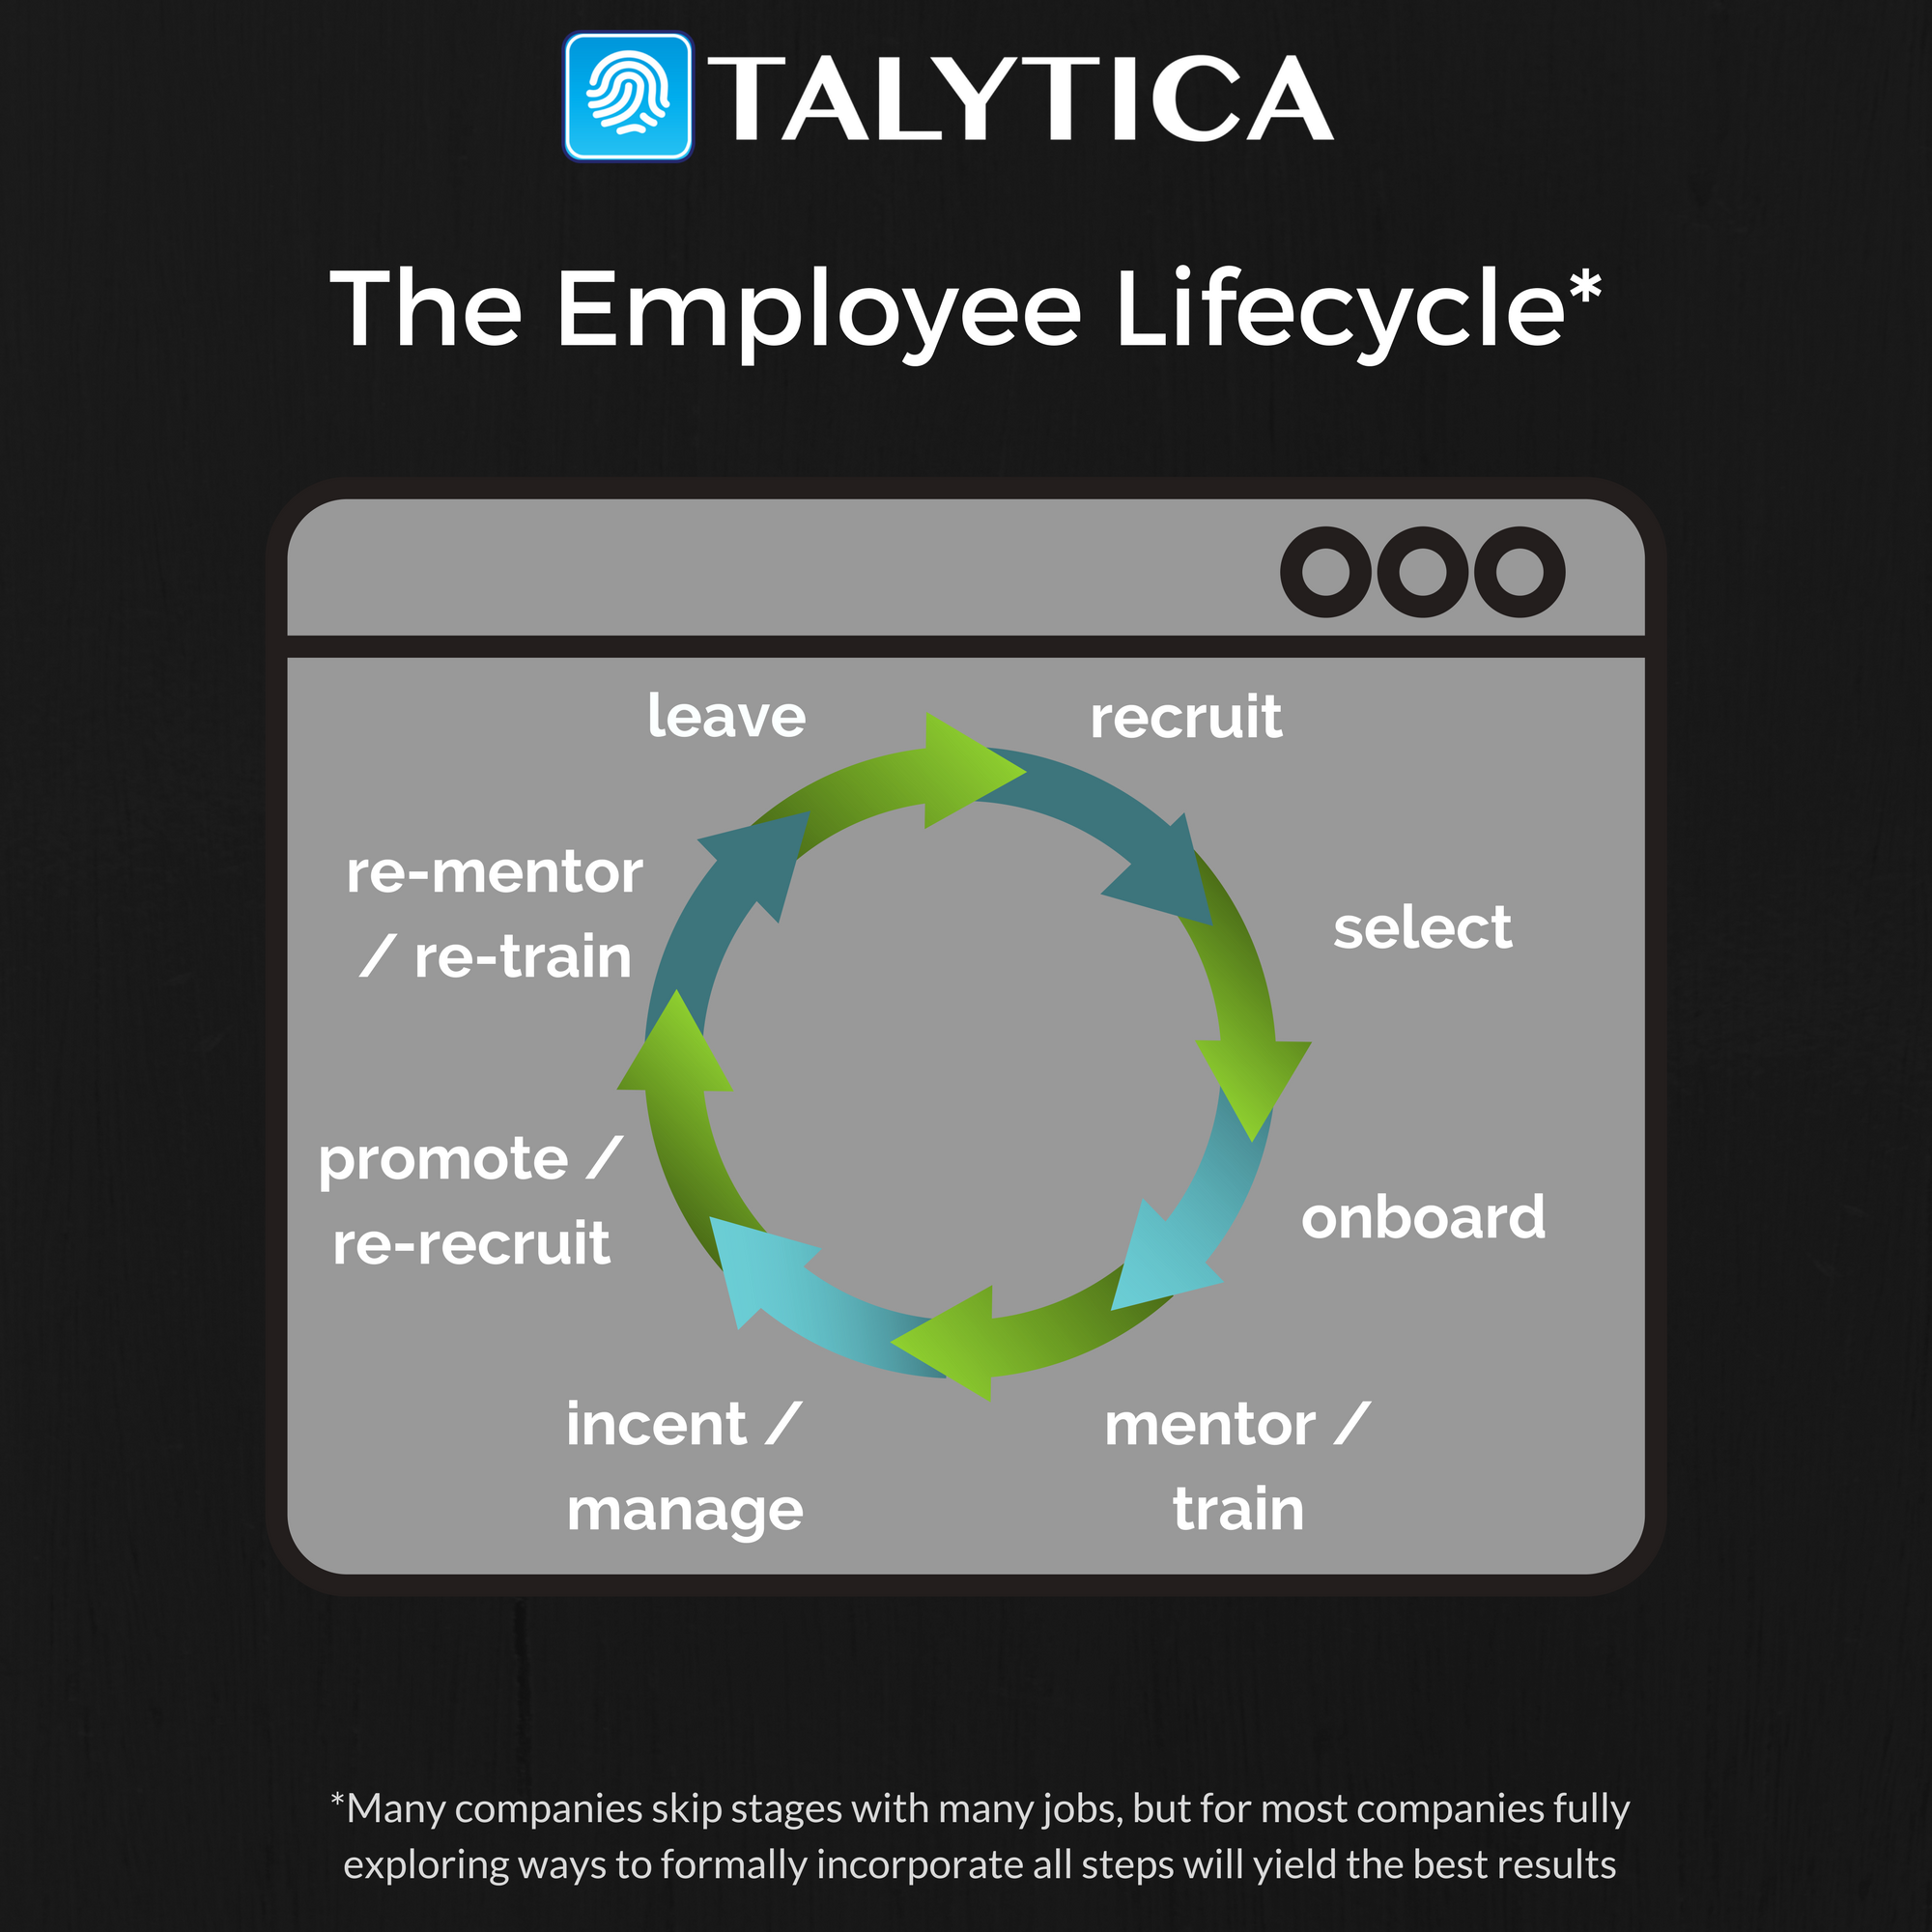 Employee lifecycle- end employee turnover